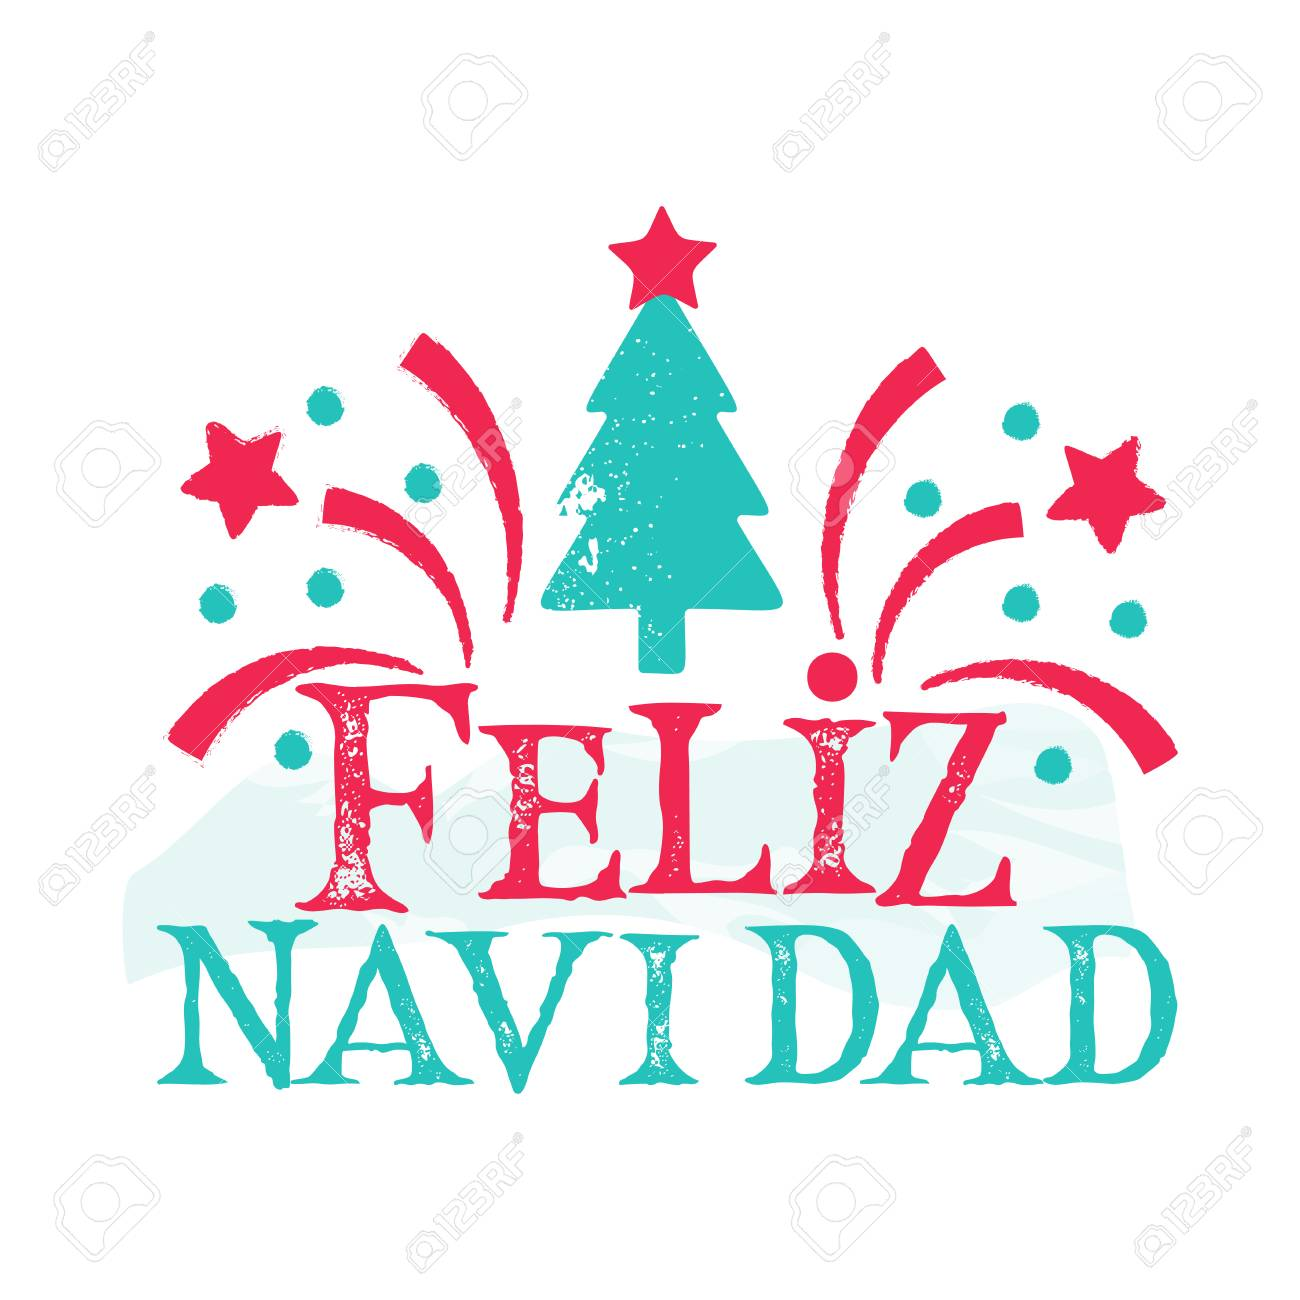 Christmas Spanish.Feliz Navidad Merry Christmas Spanish Language